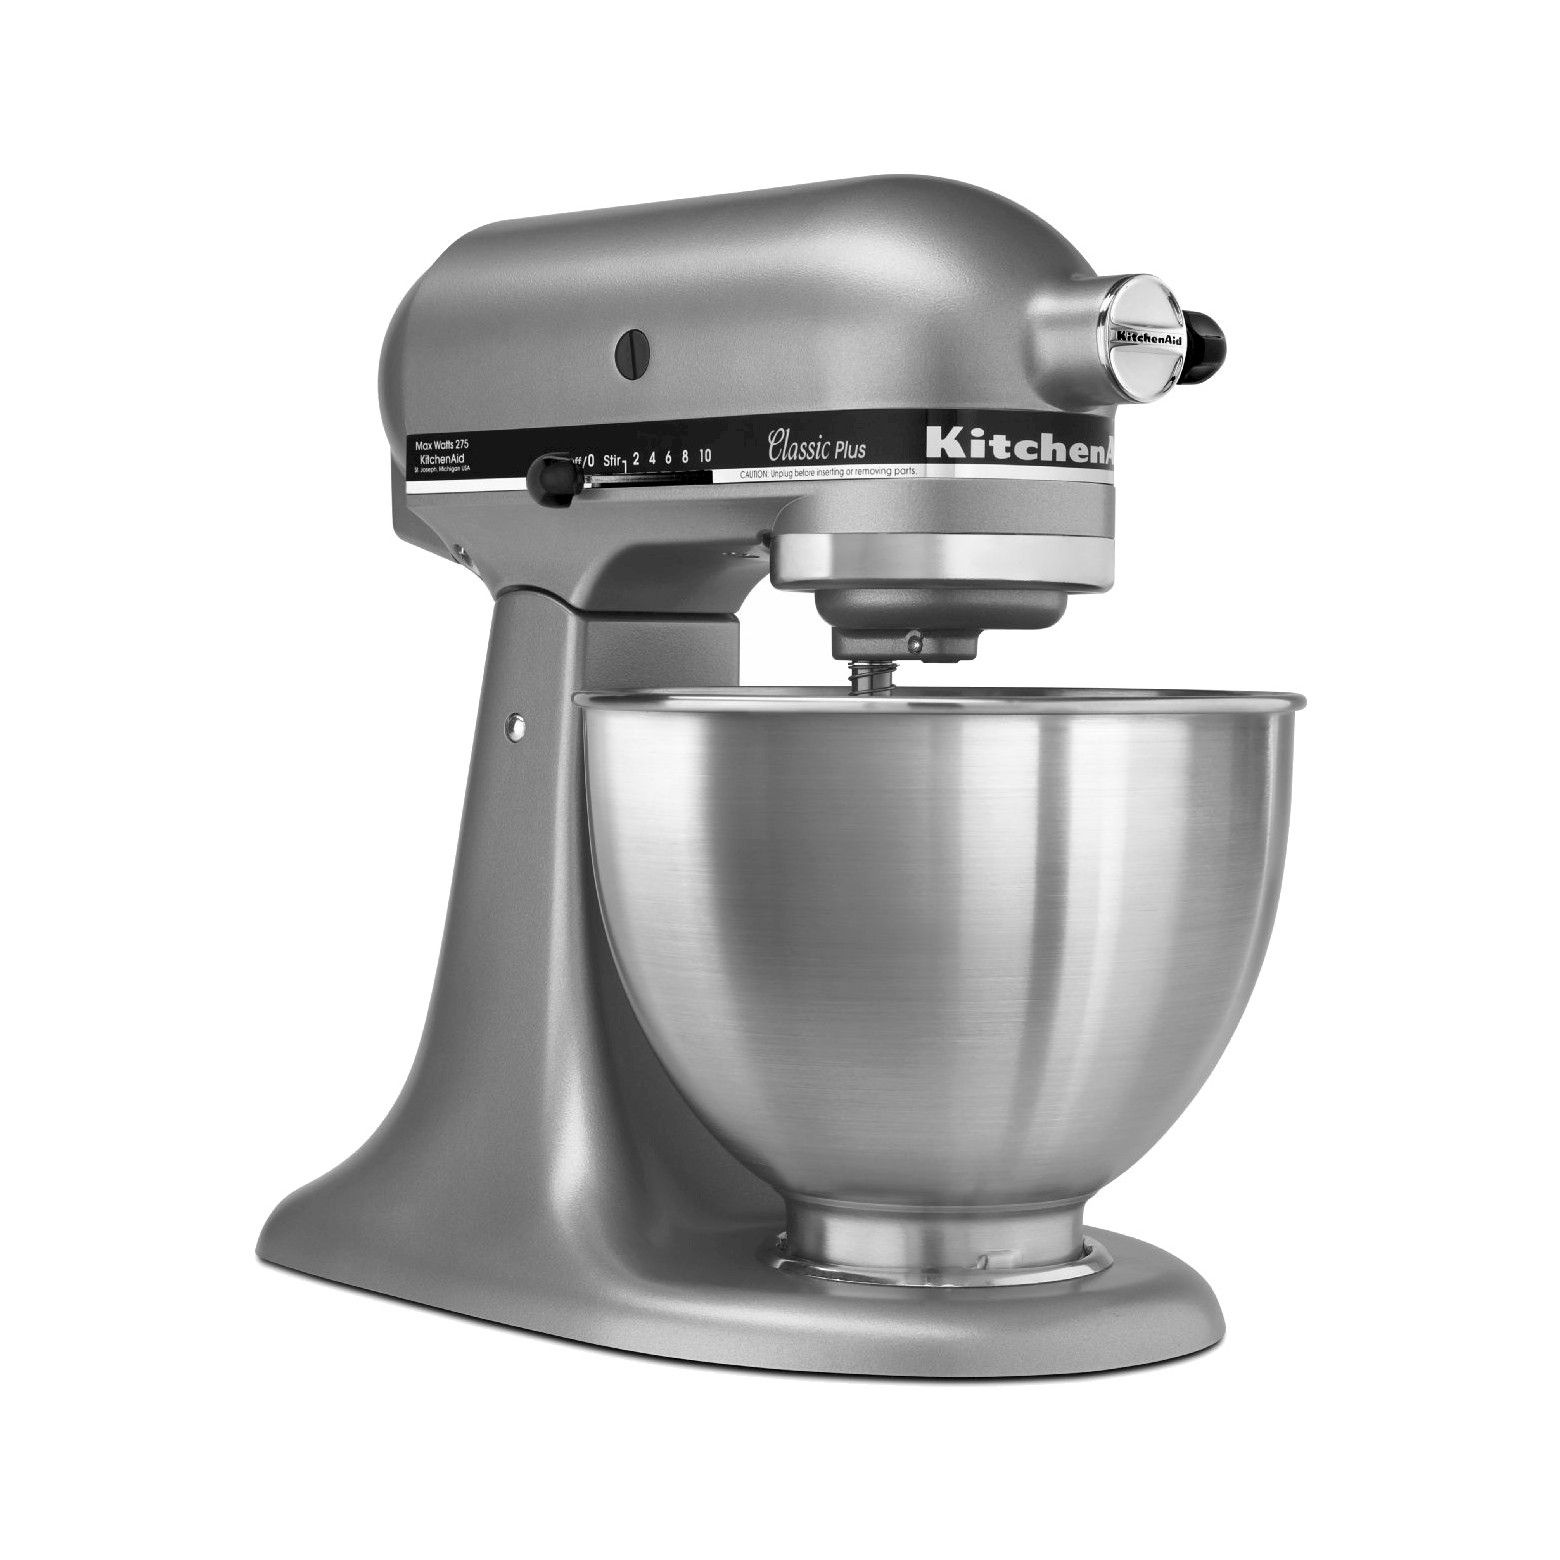 Kitchenaid classic 45qt stand mixer with images